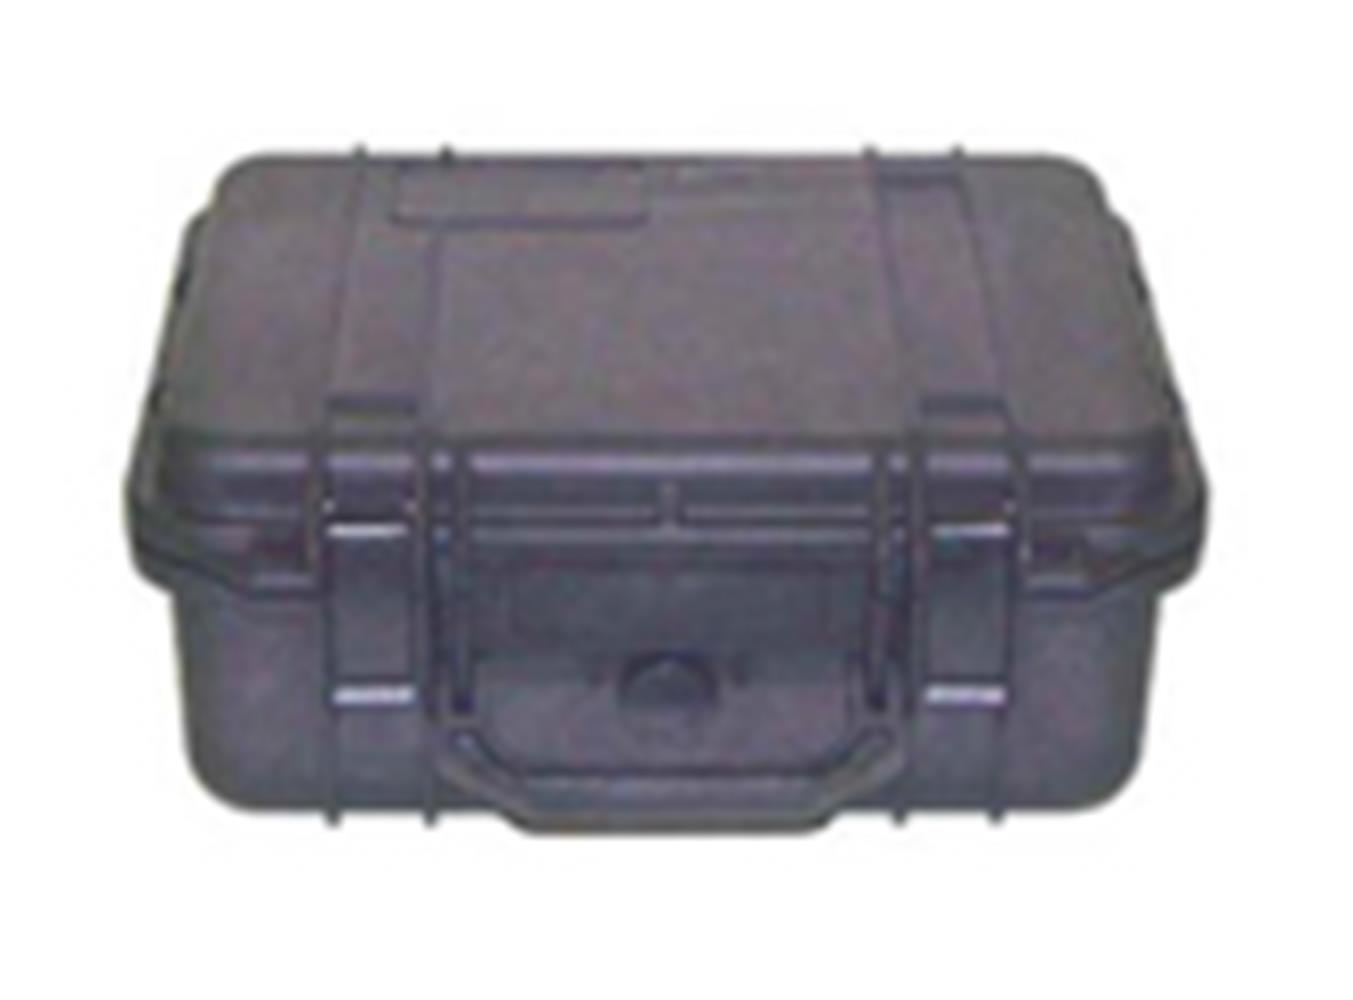 PELICAN PC1500NFB 1500 CASE ONLY BLACK